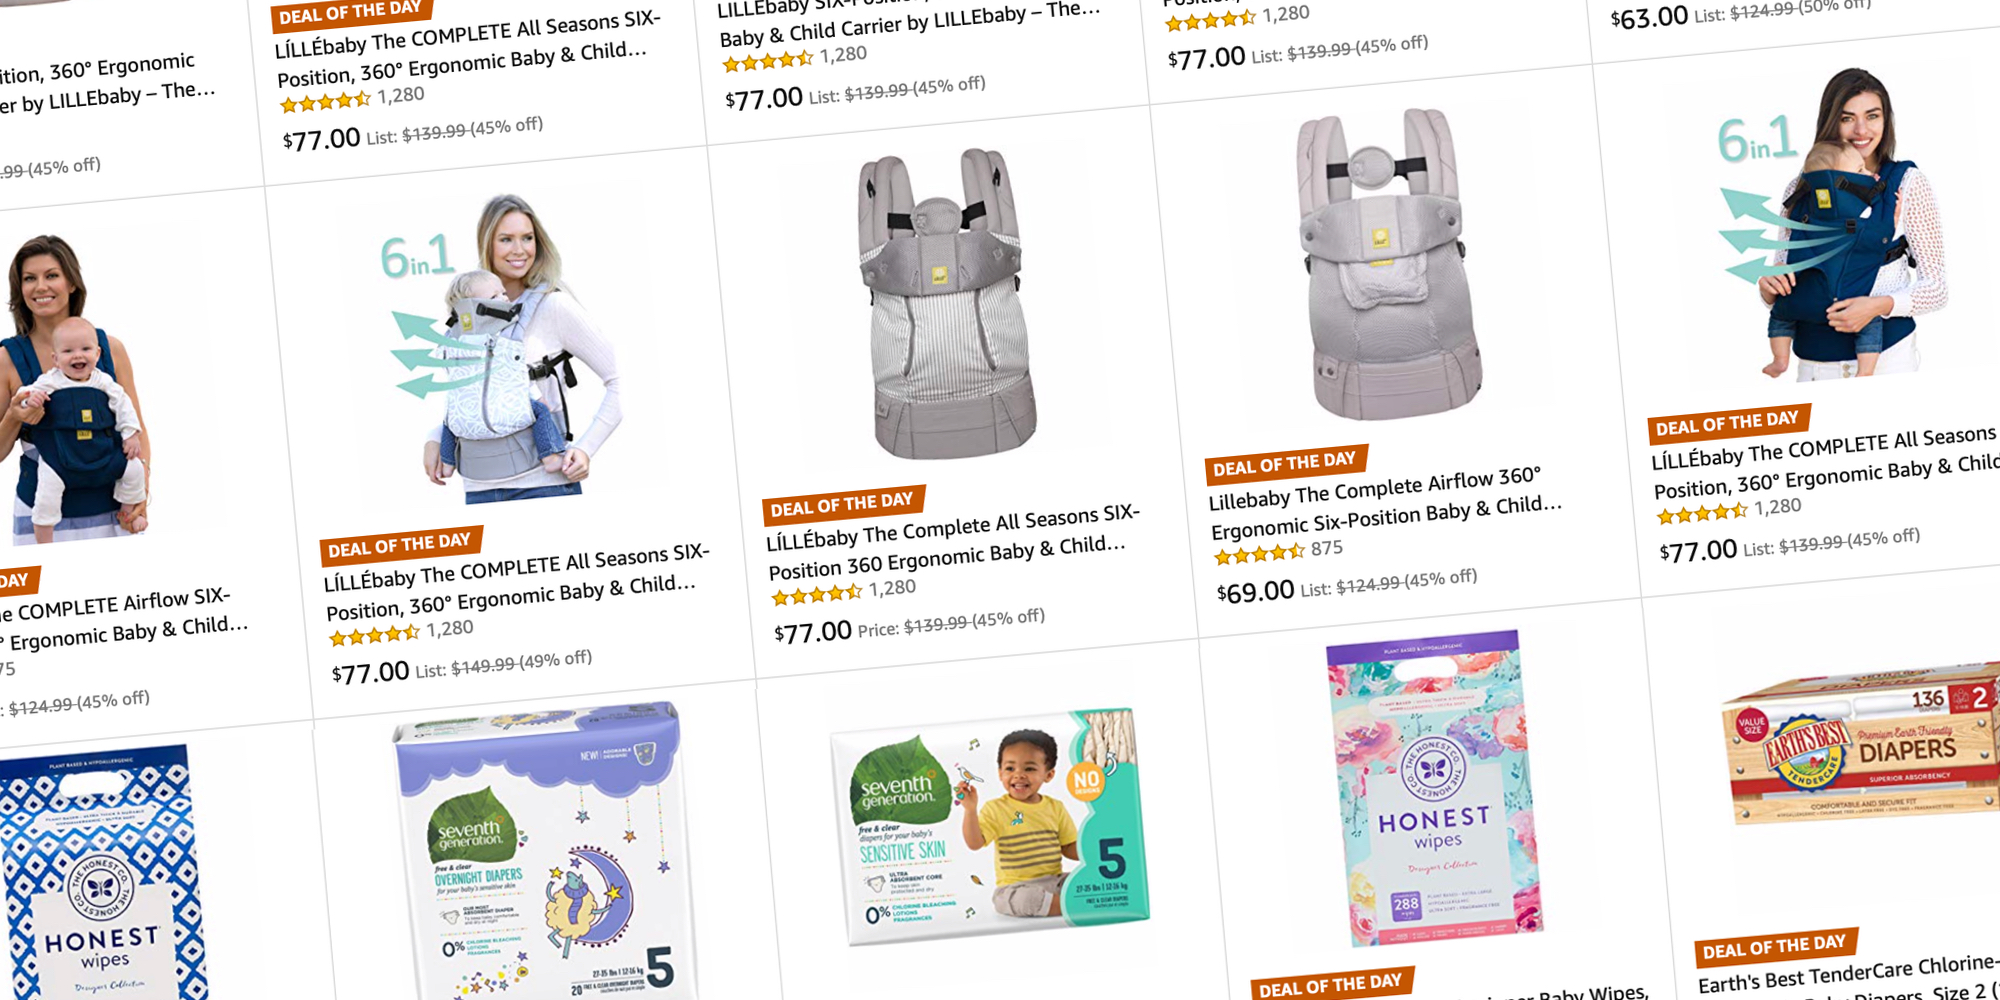 Amazon's Gold Box discounts natural baby care products and child carries from $5 (Up to 40% off)